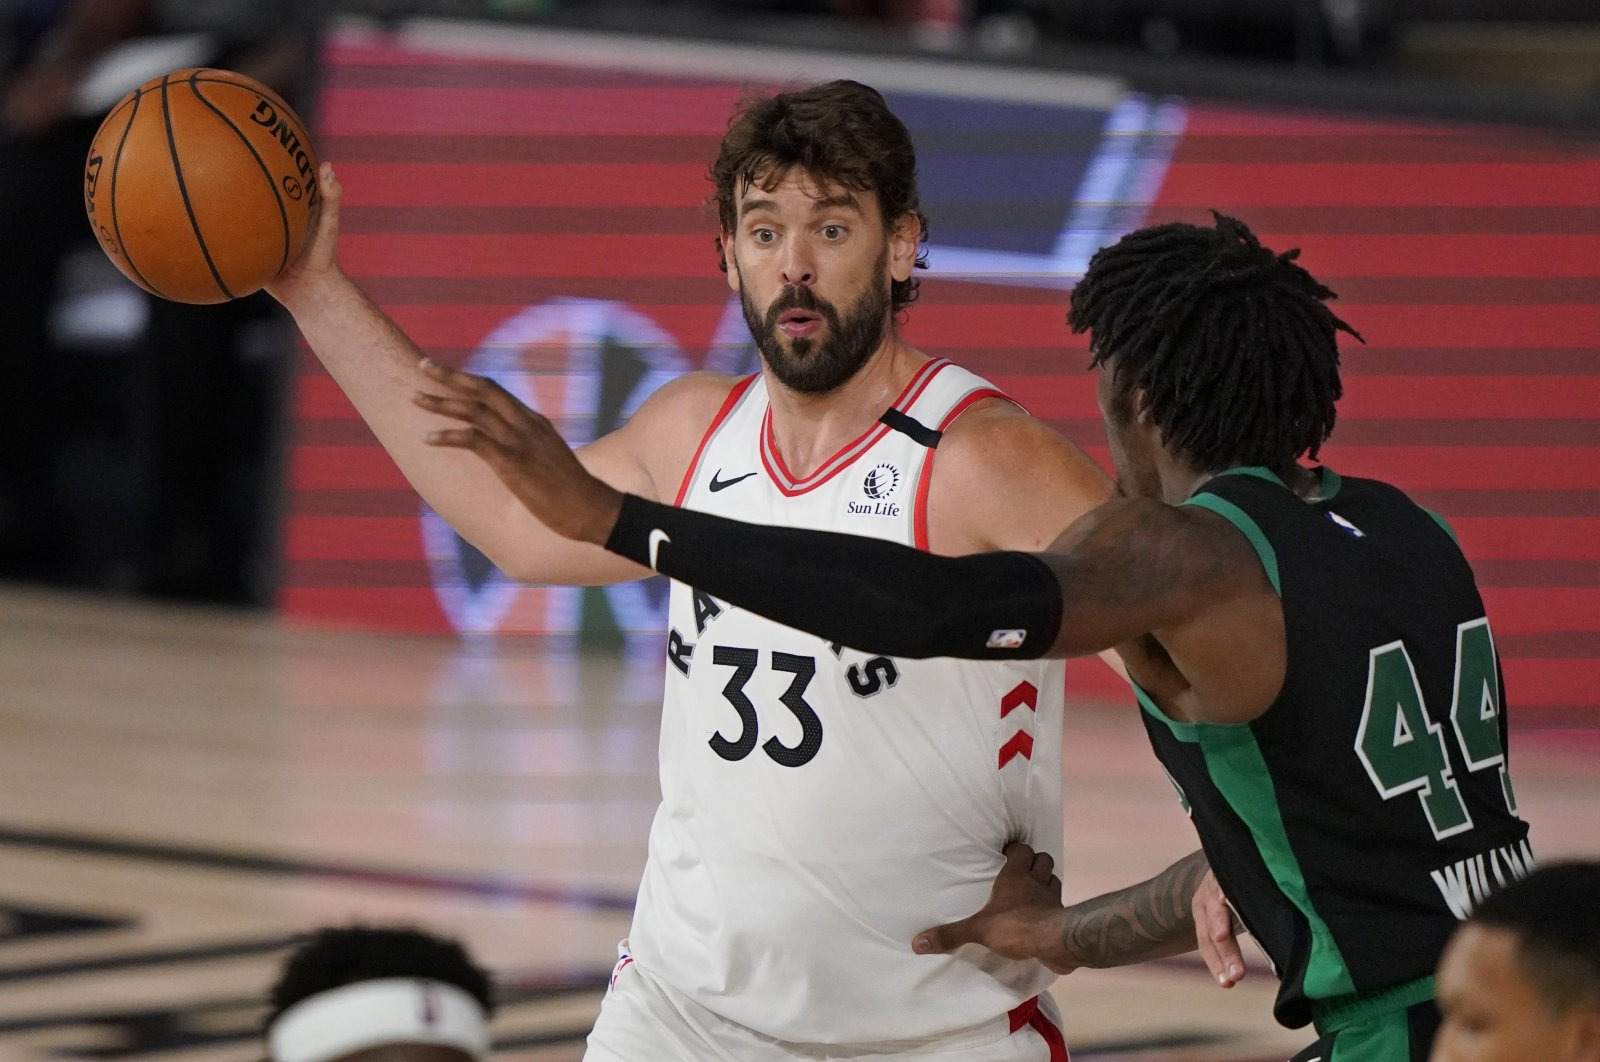 Marc Gasol (L) and Robert Williams III in action during an NBA game between the Toronto Raptors and Boston Celtics, in Lake Buena Vista, Florida, U.S, Nov. 24, 2020. (AP Photo)